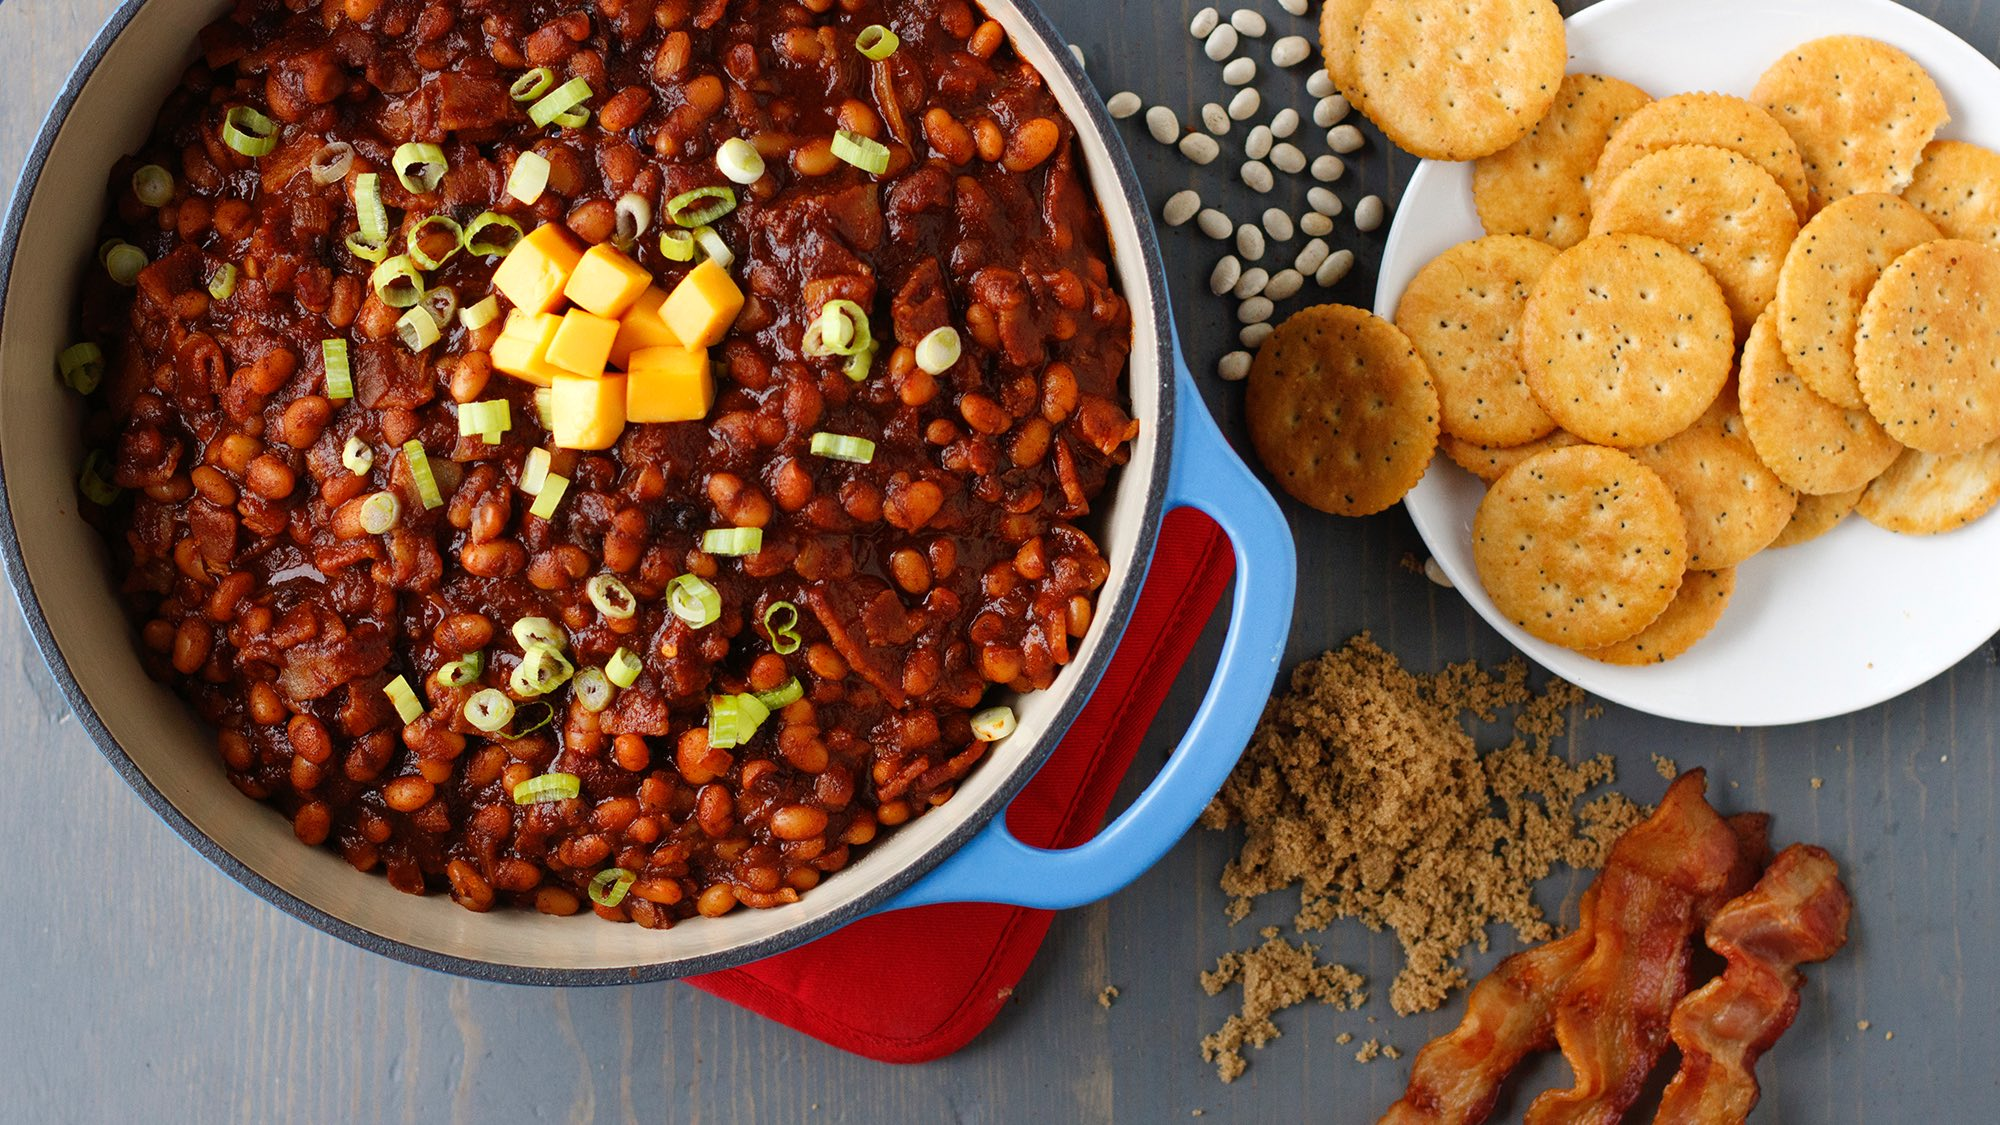 McCormick Boston Baked Bean Dip